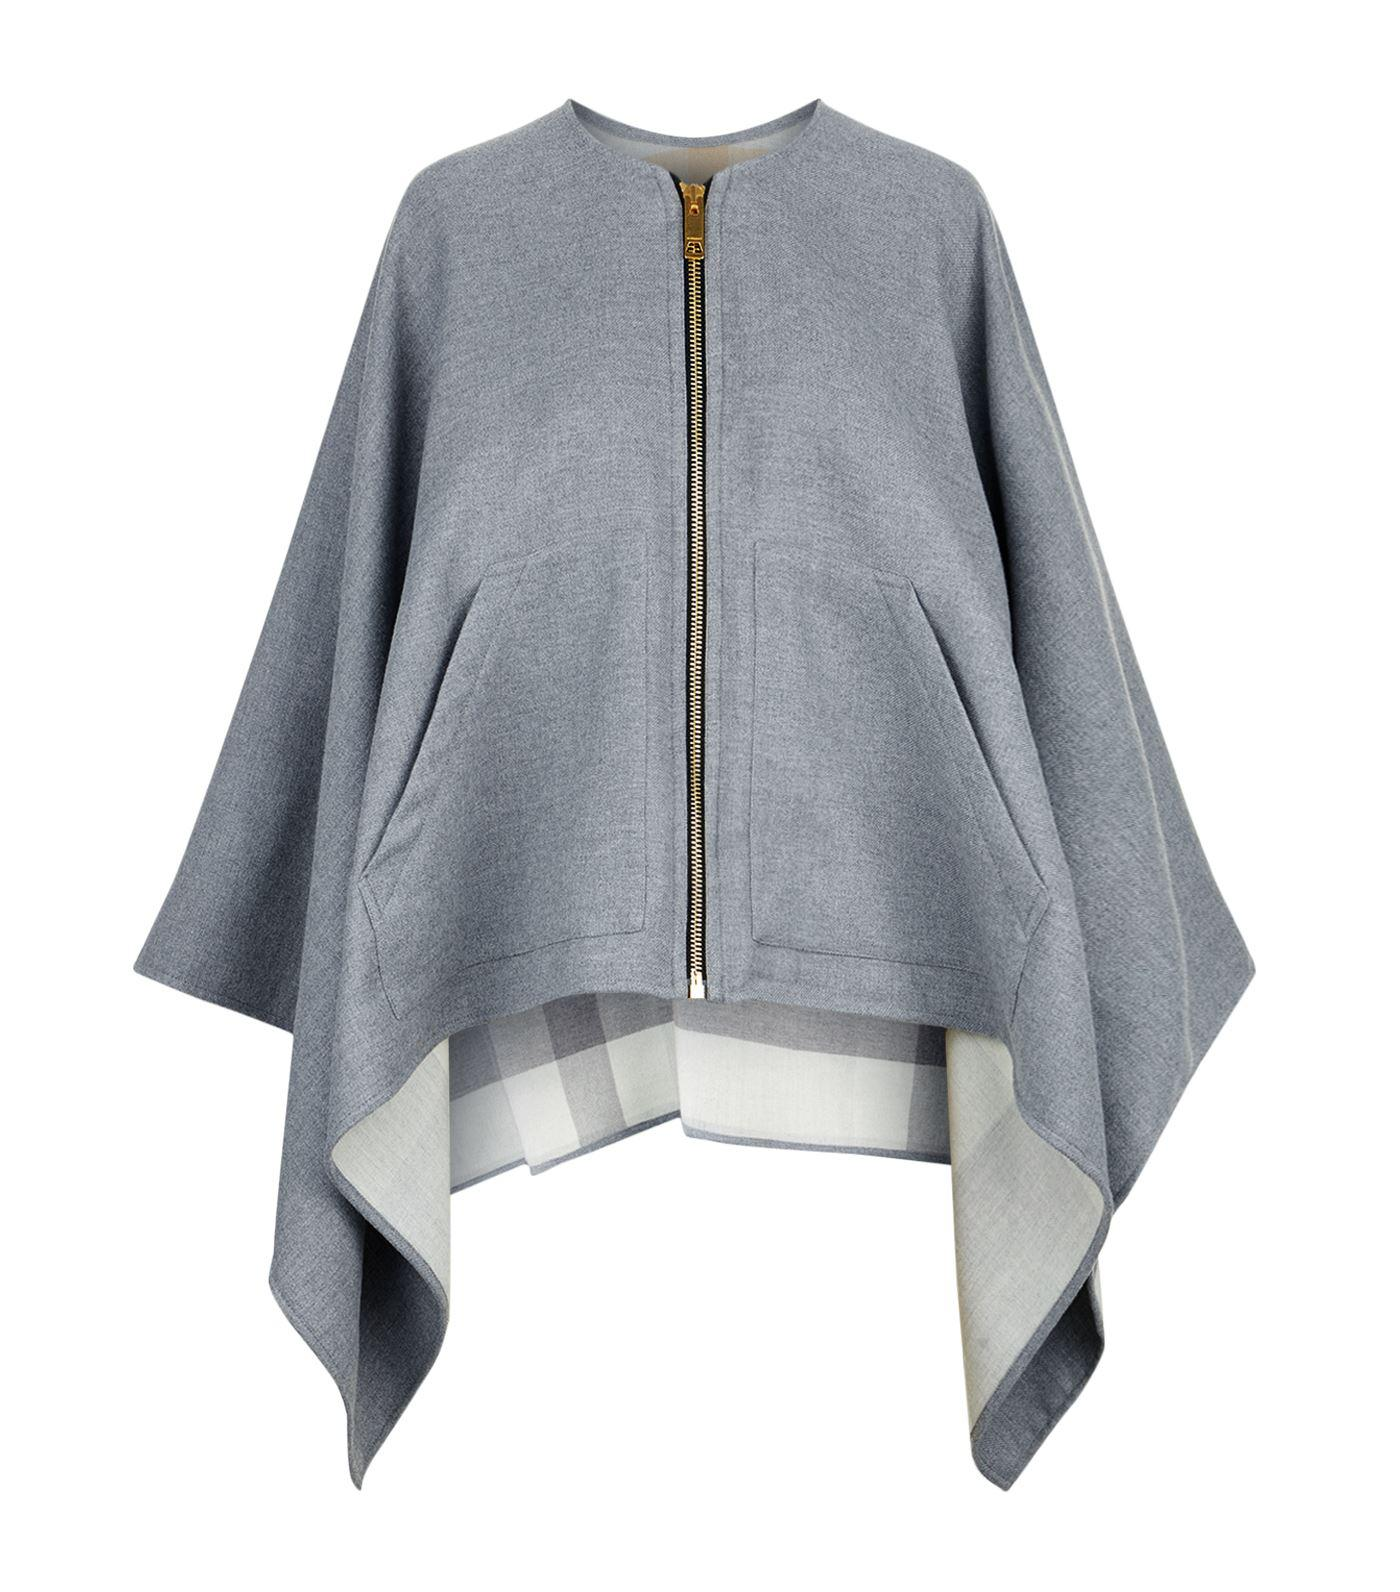 601801ac4 Burberry Merino Wool Zip-up Poncho, Grey in Gray - Lyst